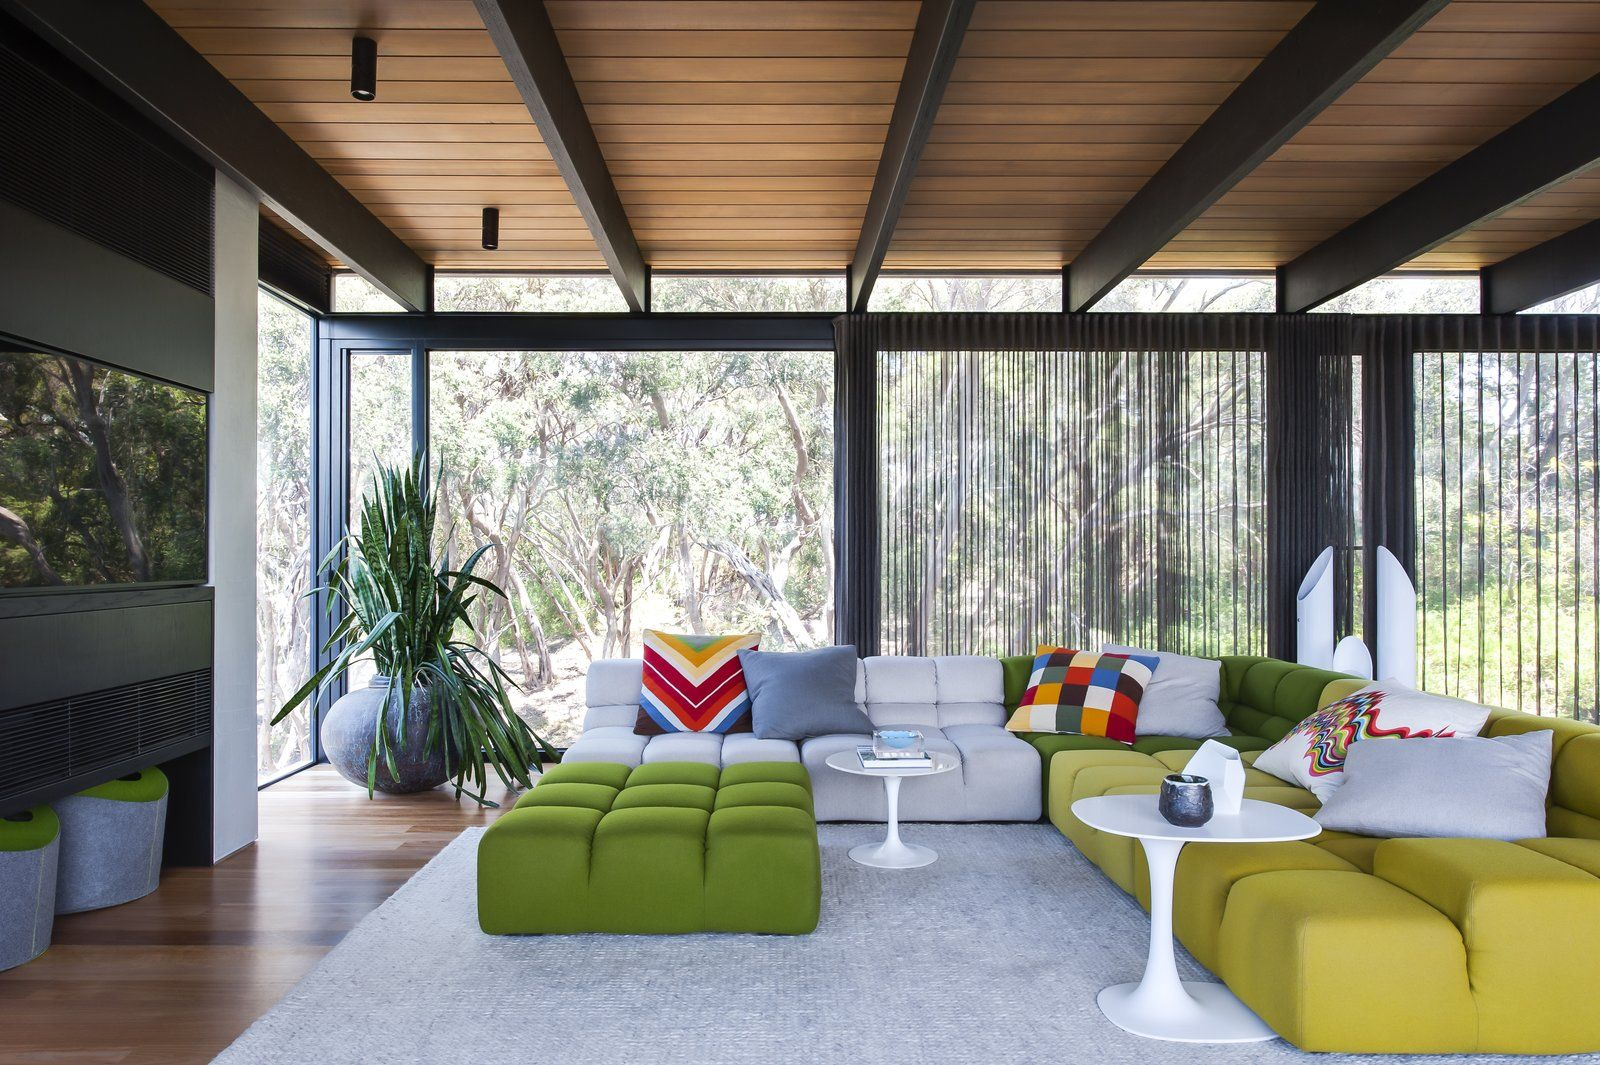 In A Midcentury Home In Victoria, Australia, An Interior Designer Embraces  Color And A